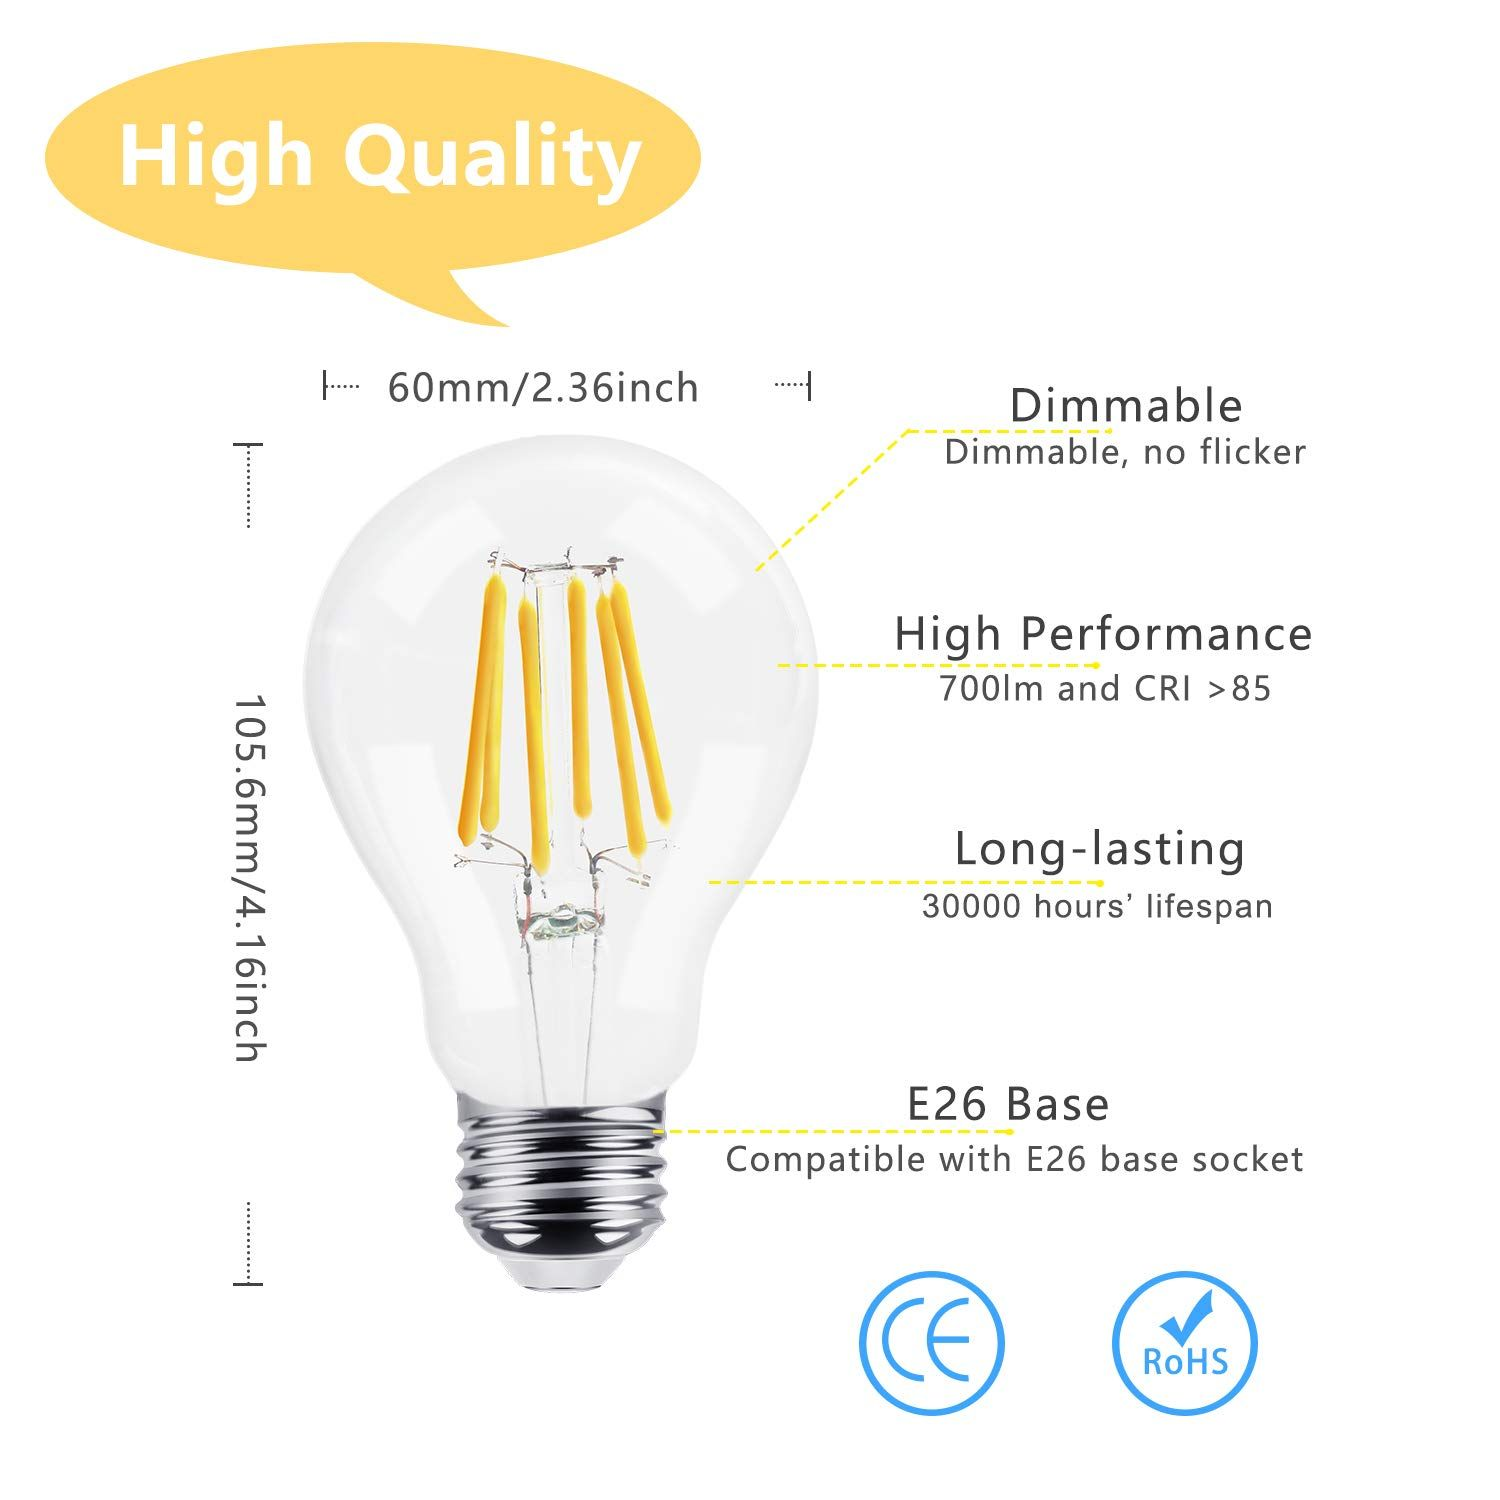 Dicuno Dimmable A19 A60 Edison Led Bulb 6w 60w Equivalent 360a Beam Angle Warm White 2700k E26 Medium Screw Outdoor Light Bulbs Dimmable Led Lights Light Bulb